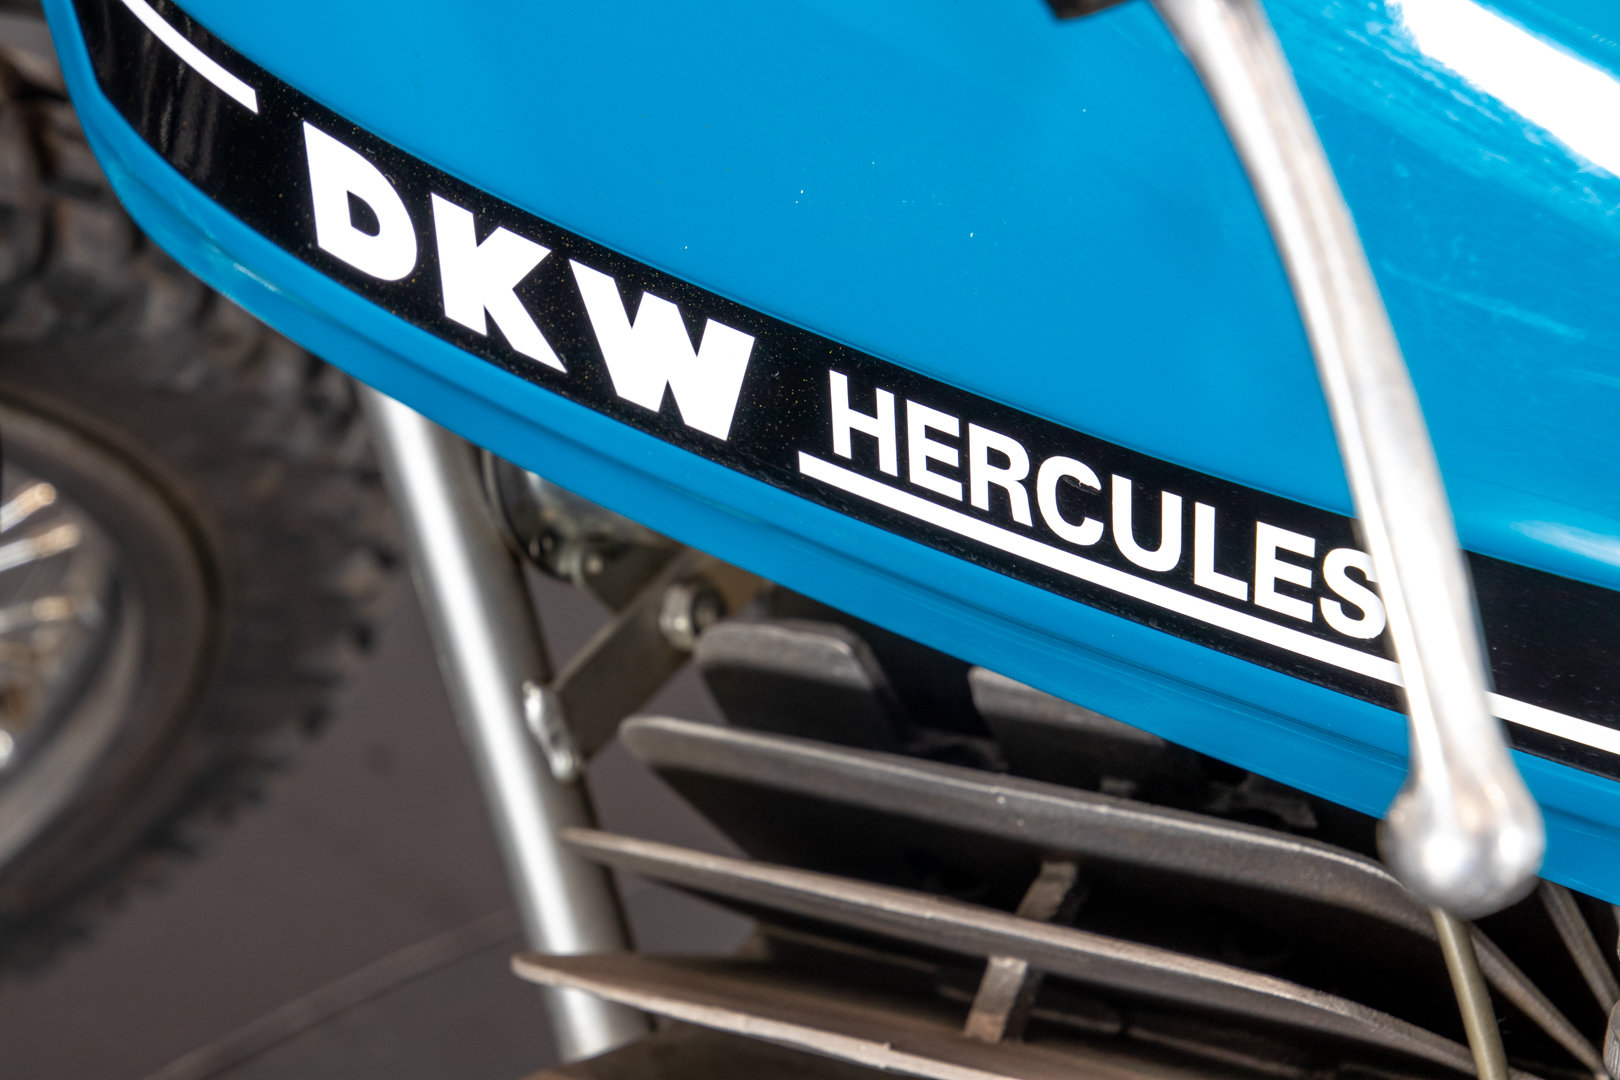 DKW - HERCULES 125 GS - 1973 For Sale (picture 6 of 6)